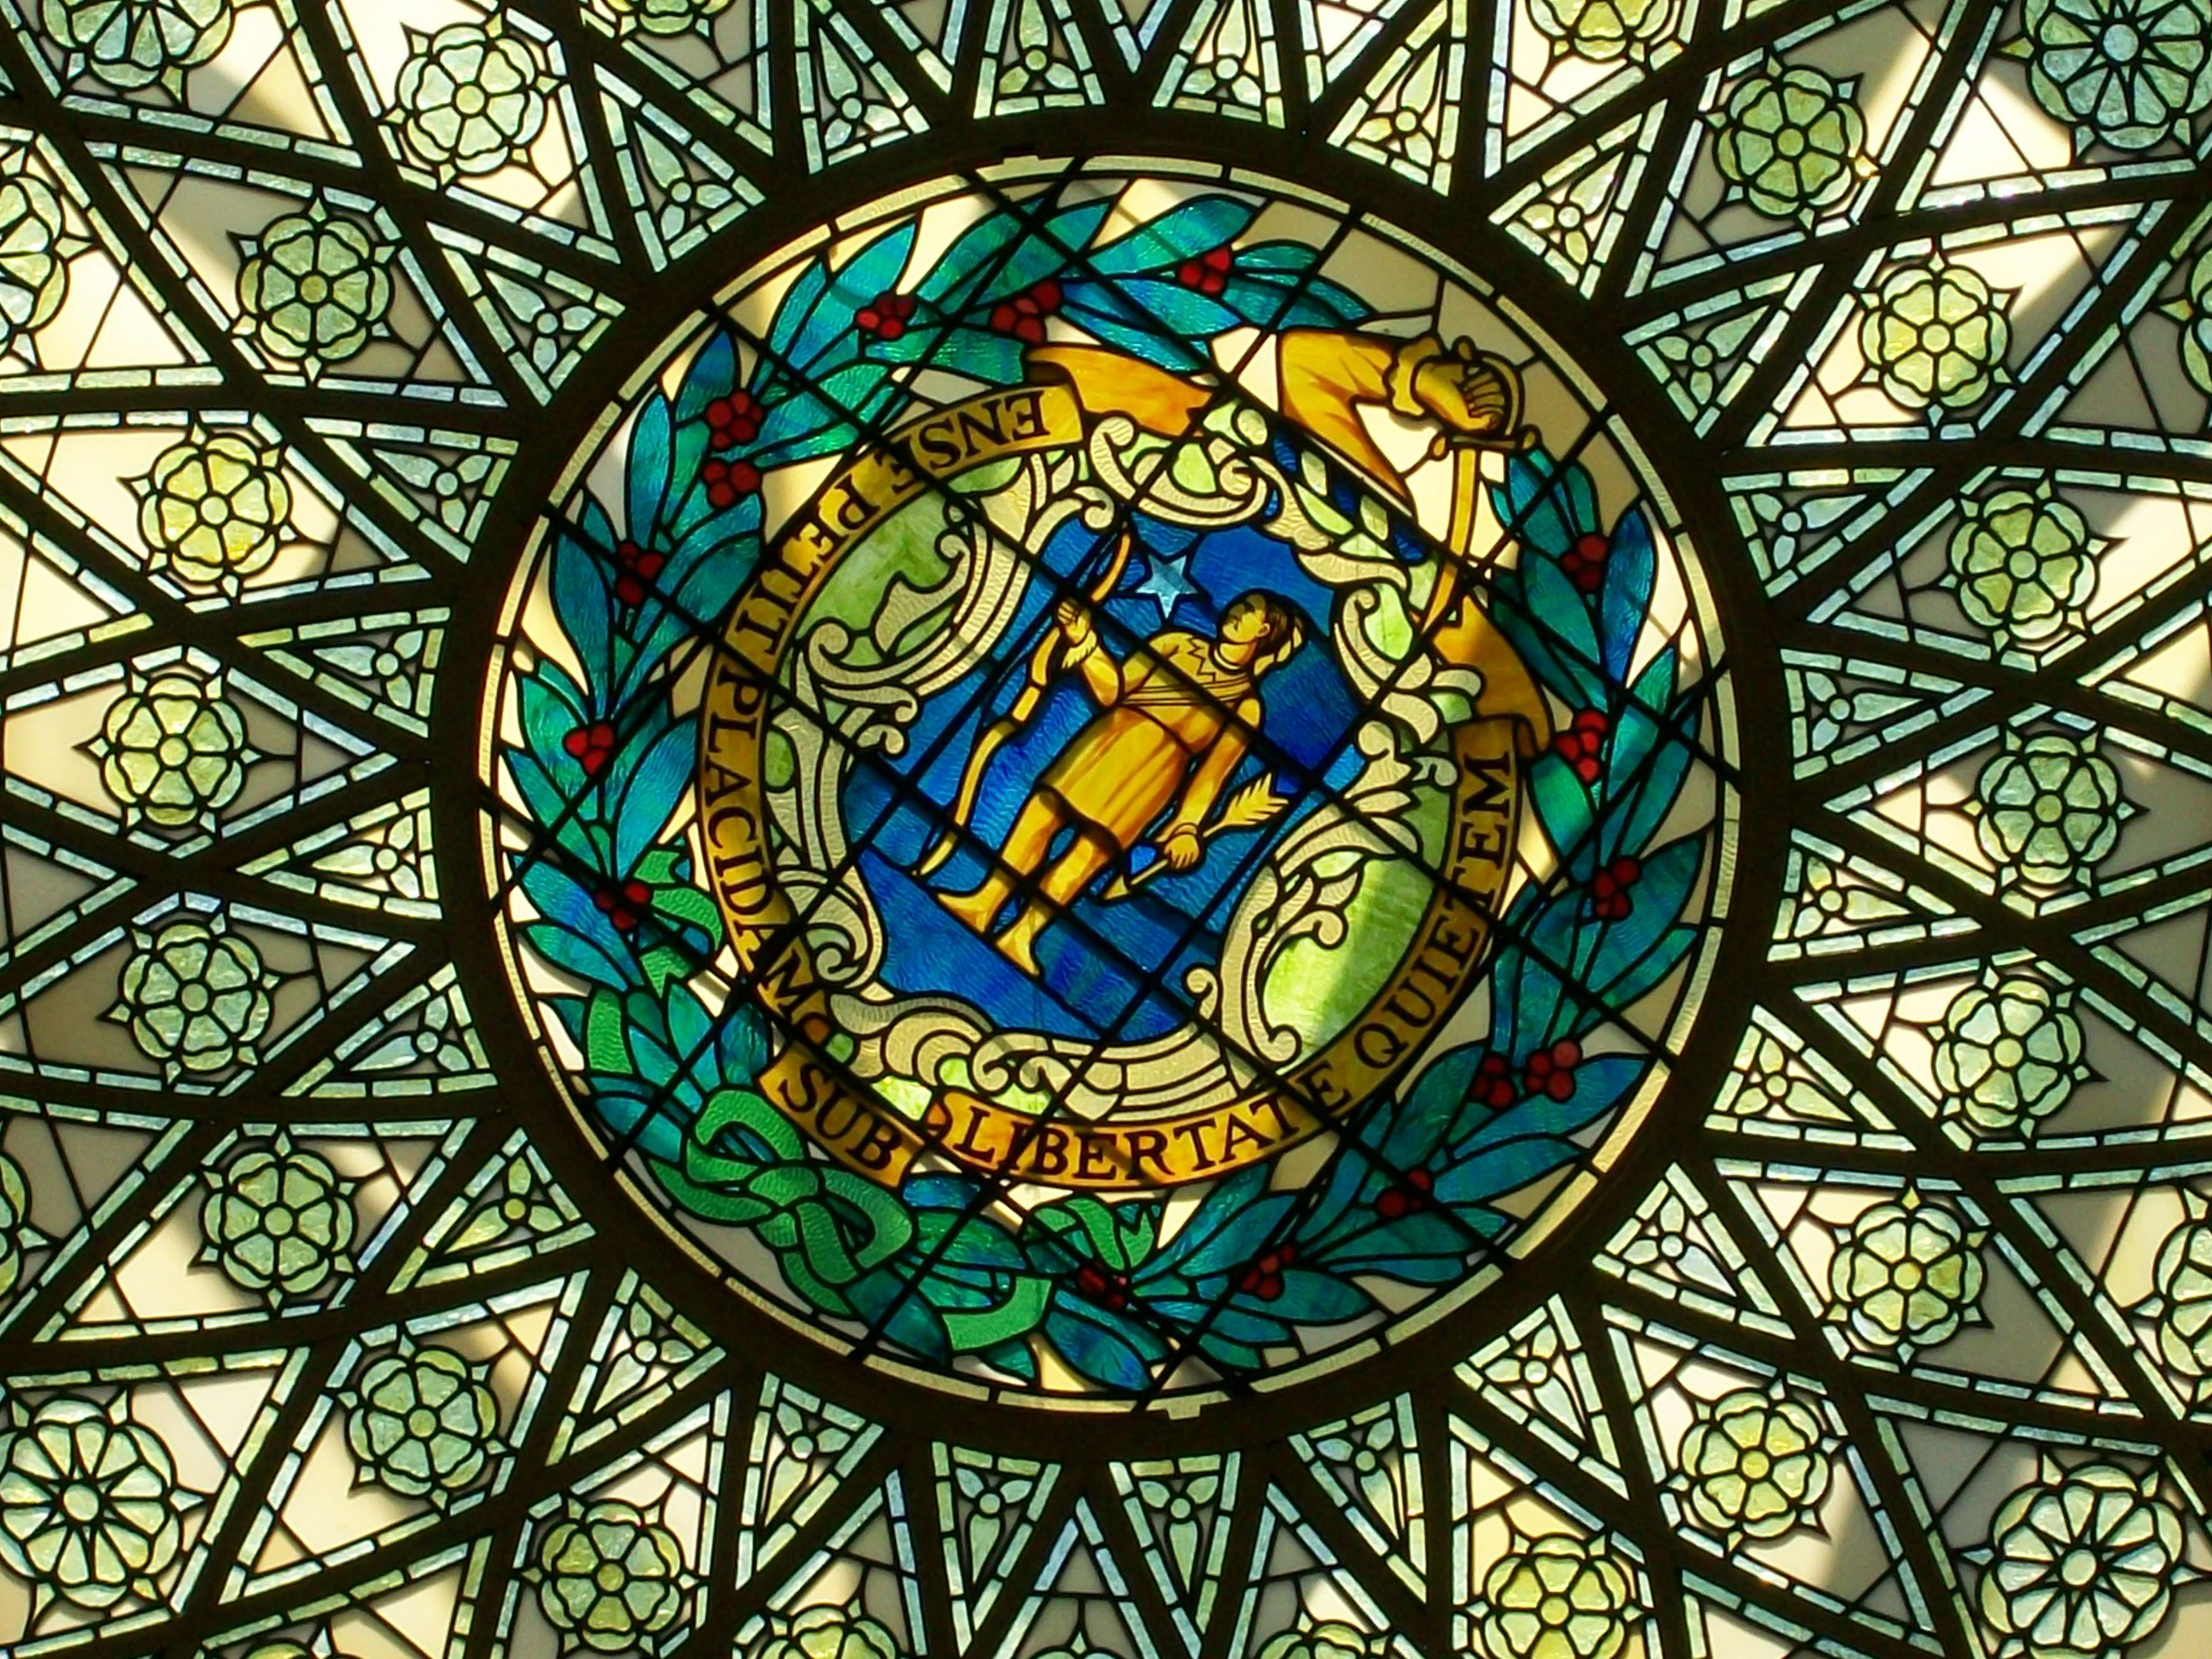 Gorgeous stained glass in the Boston capitol building